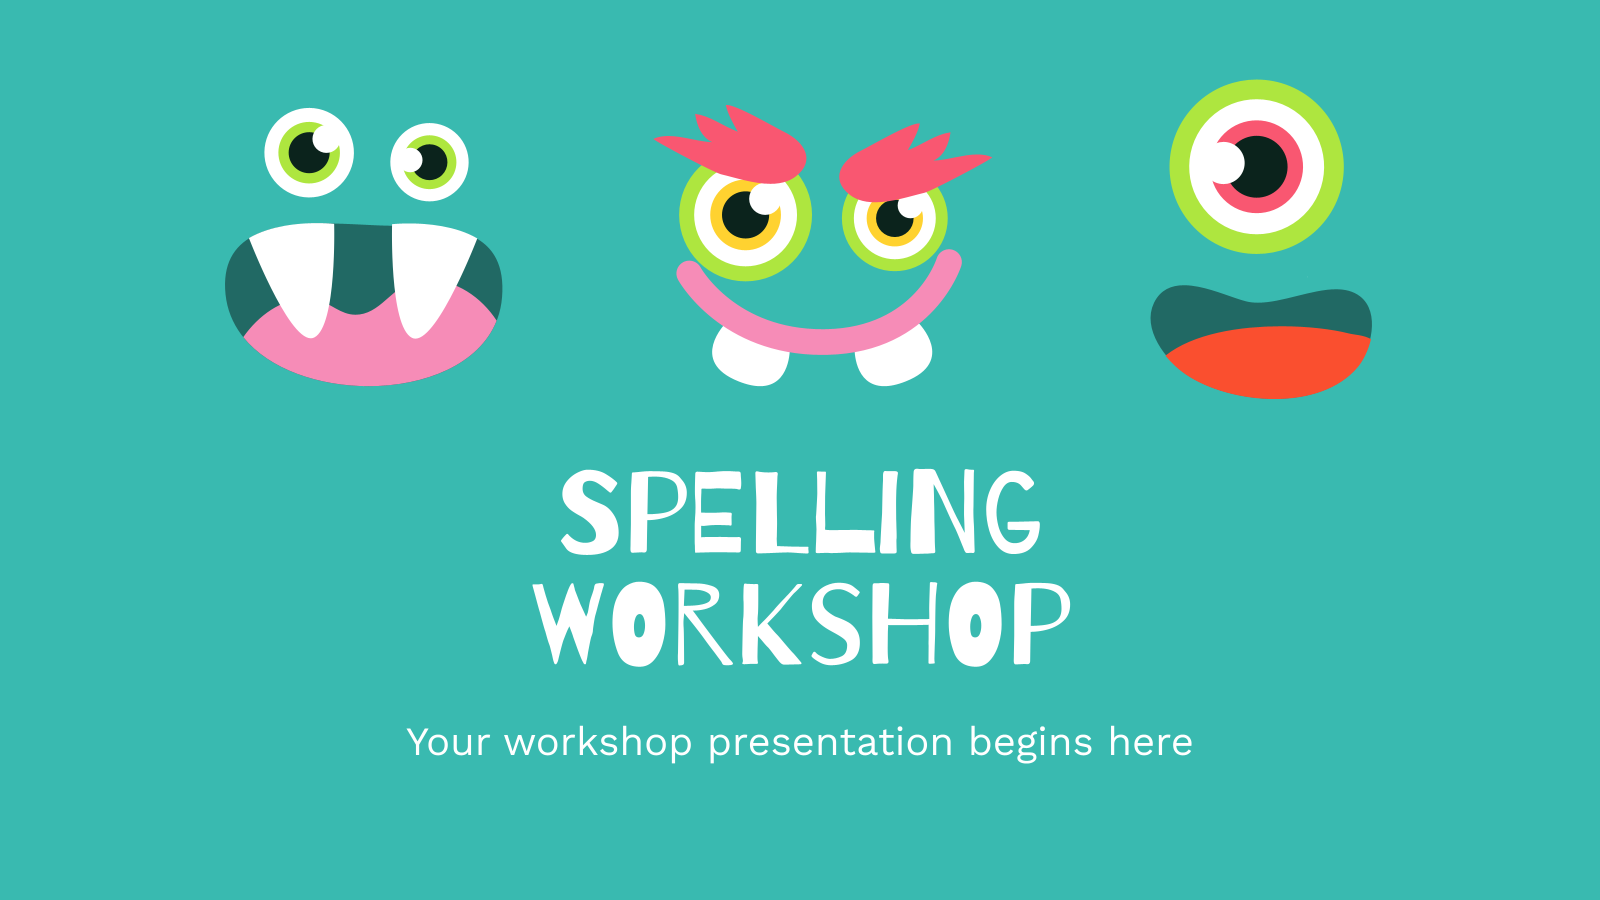 Spelling Workshop presentation template